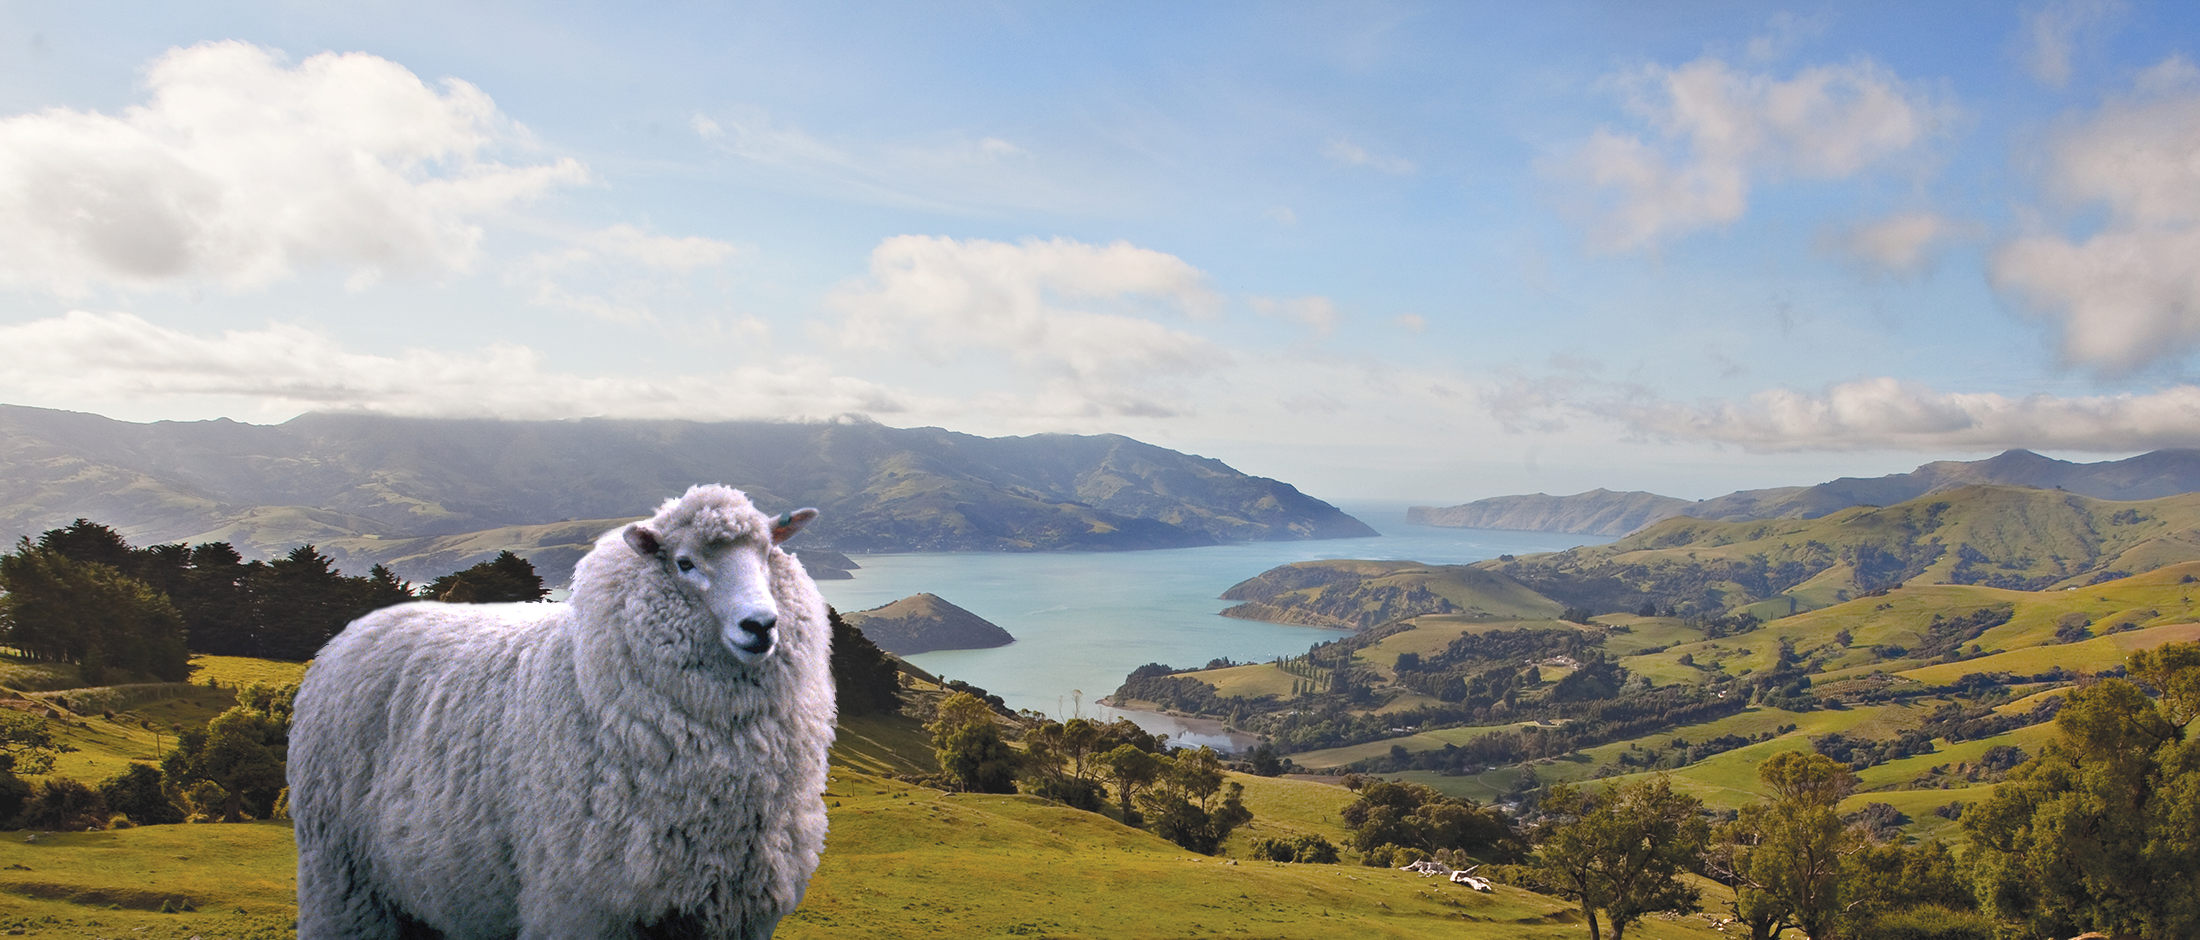 New Zealand News Wallpaper: New Zealand, The Unexpected Trade Partner For The EU